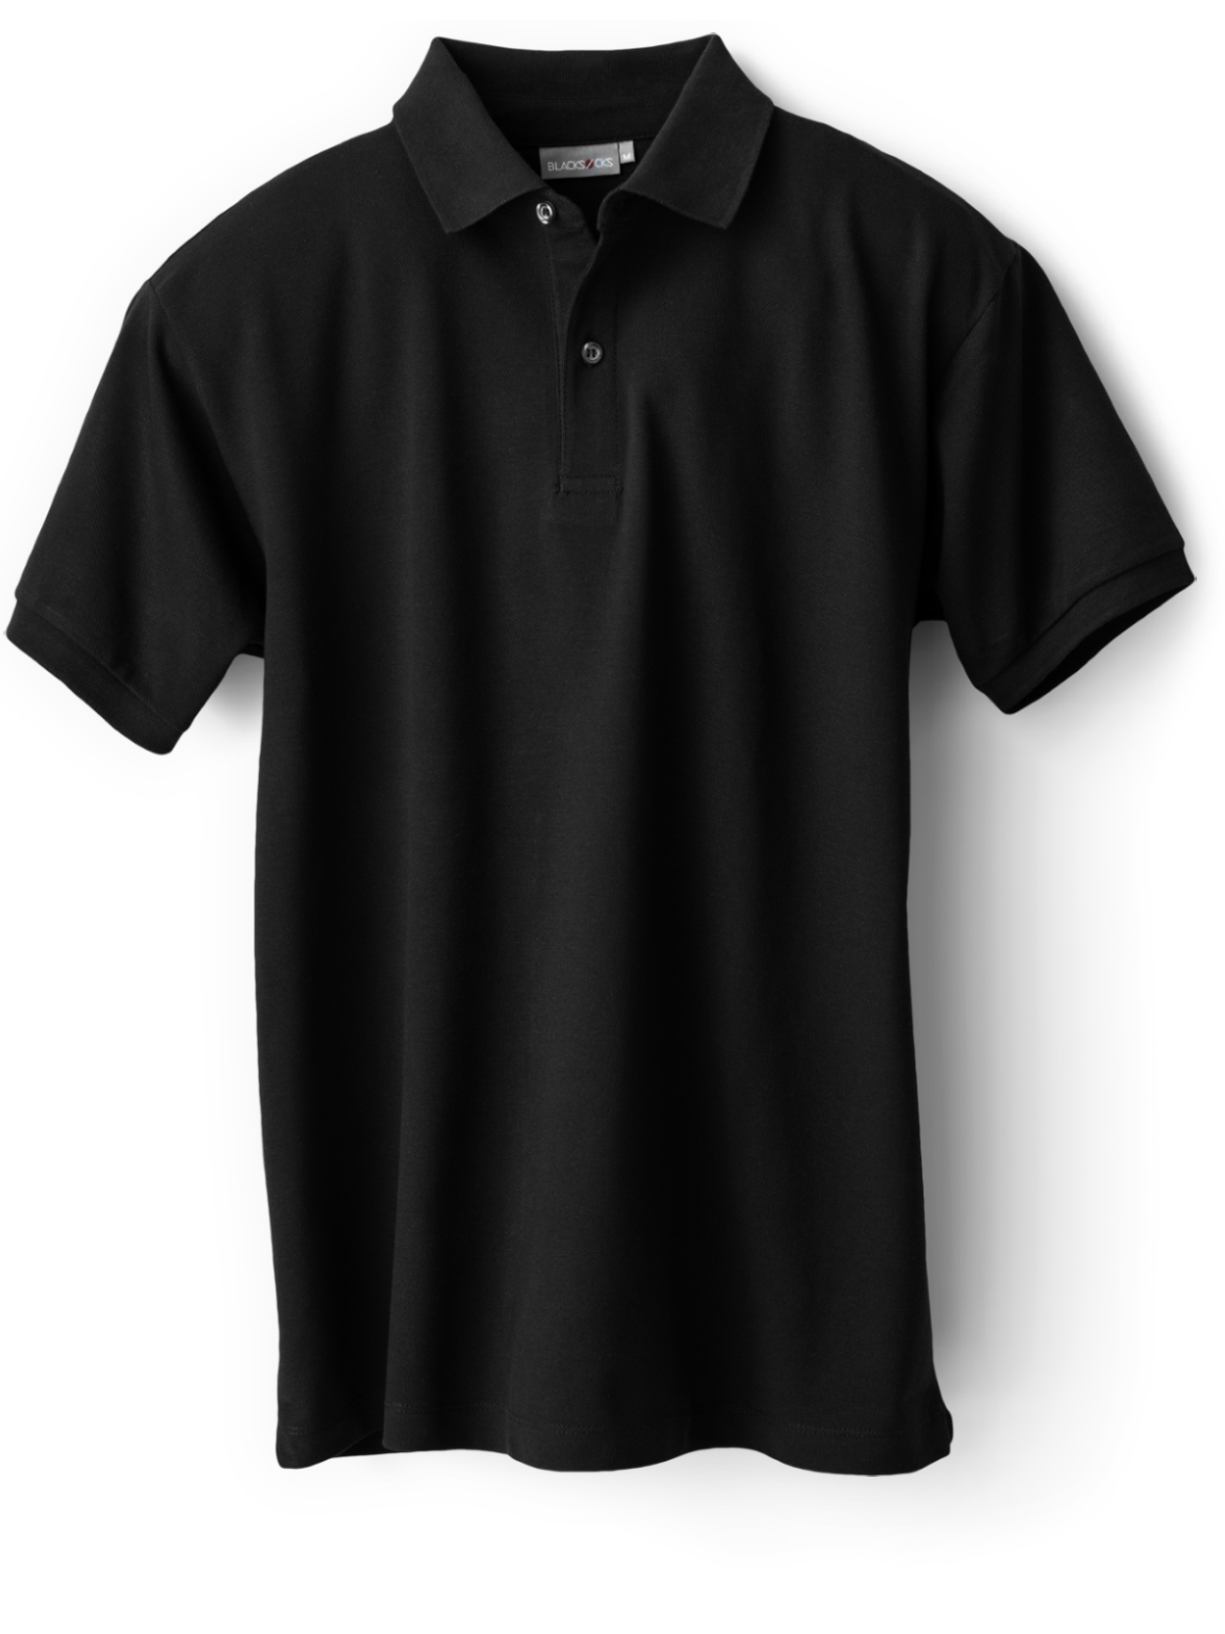 Pierrette Polo Shirt Without Any Logo On The Chest Blacksocks